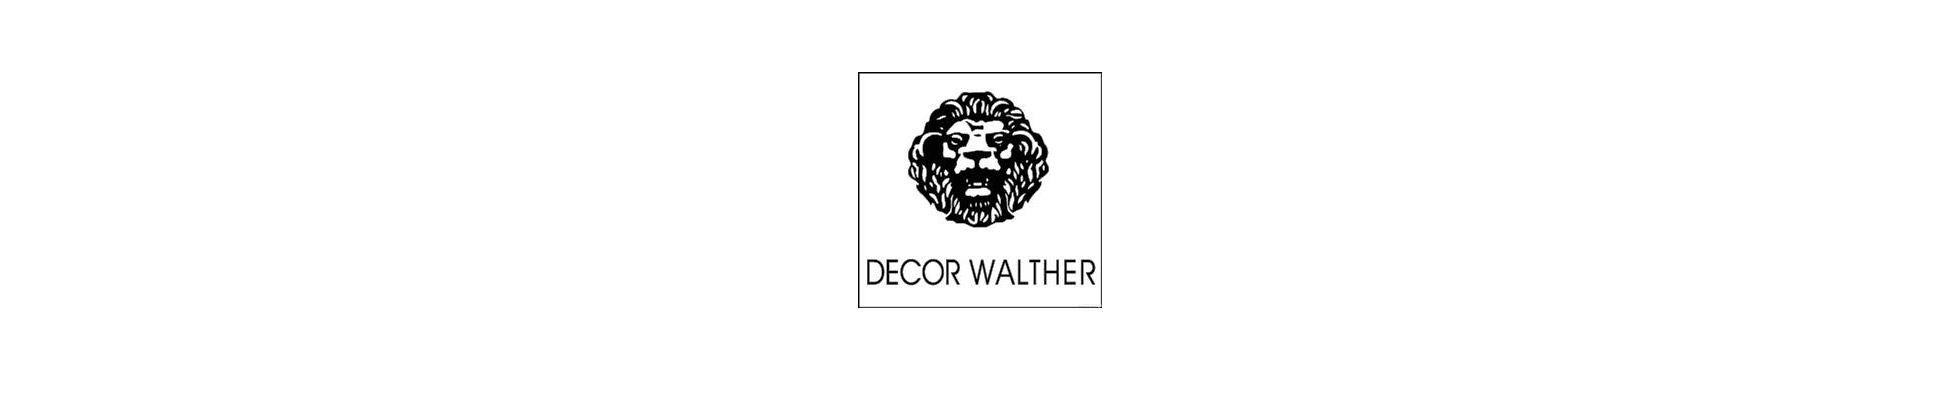 Decor Walther Angebote